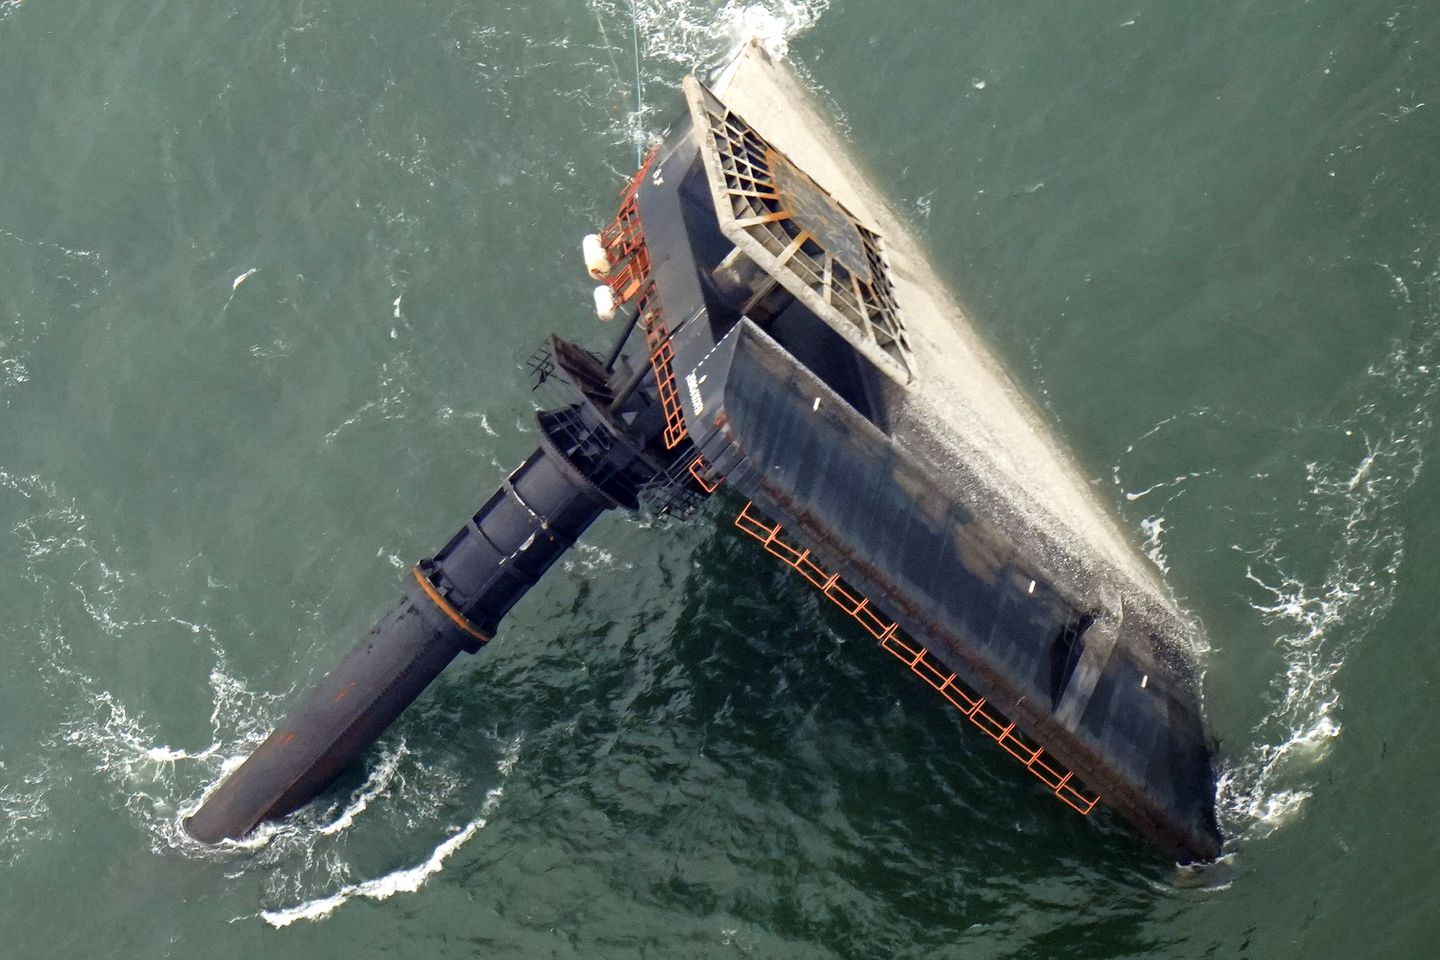 In this April 18, file photo, the capsized lift boat Seacor Power is seen seven miles off the coast of Louisiana in the Gulf of Mexico. The lift boat had lowered its legs and was trying to turn to face heavy winds when it flipped in the Gulf of Mexico off Louisiana last month, according to a preliminary federal report released last month.